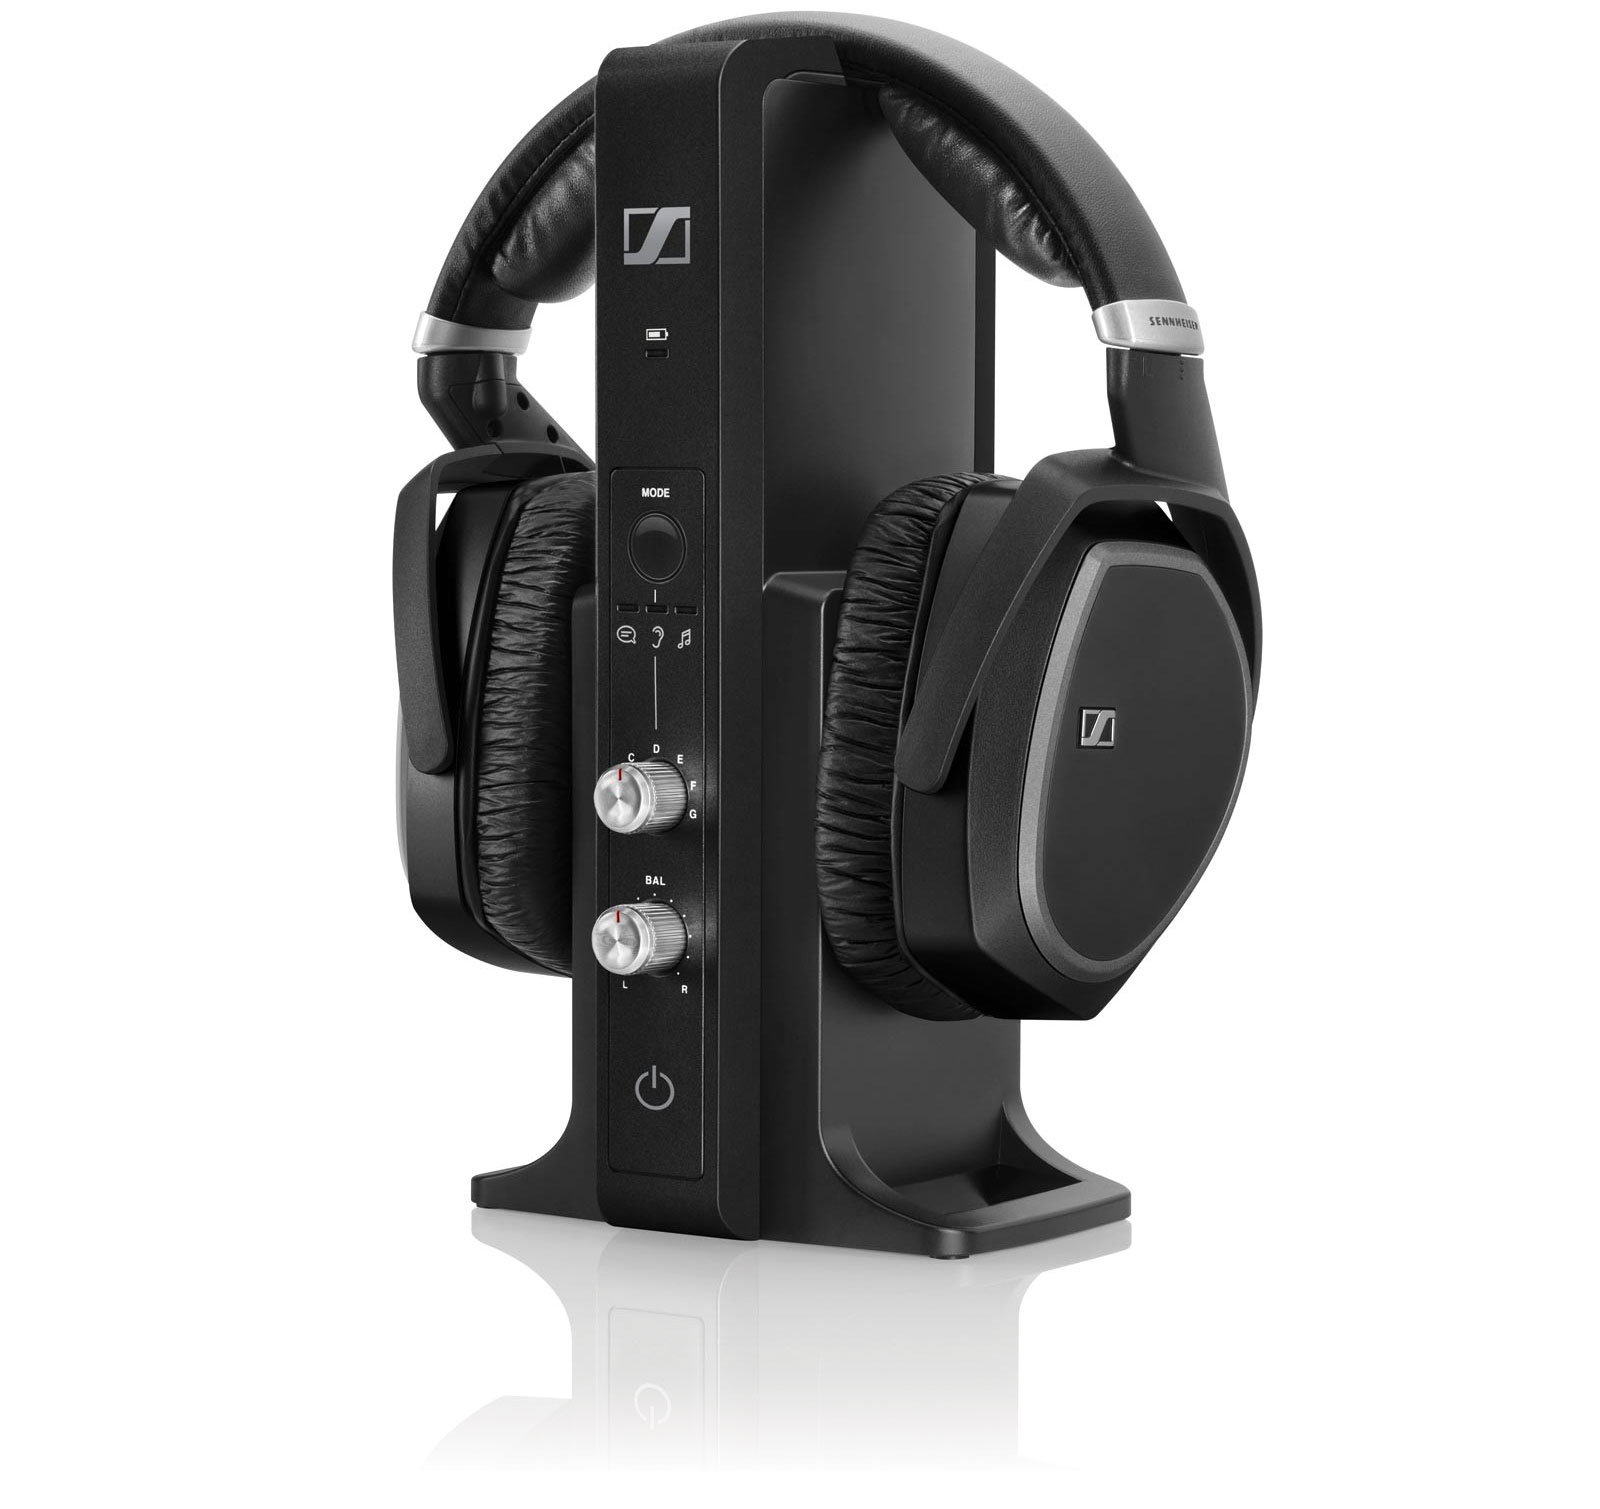 Sennheiser RS 195 TV Digital Wireless Headset Headphones